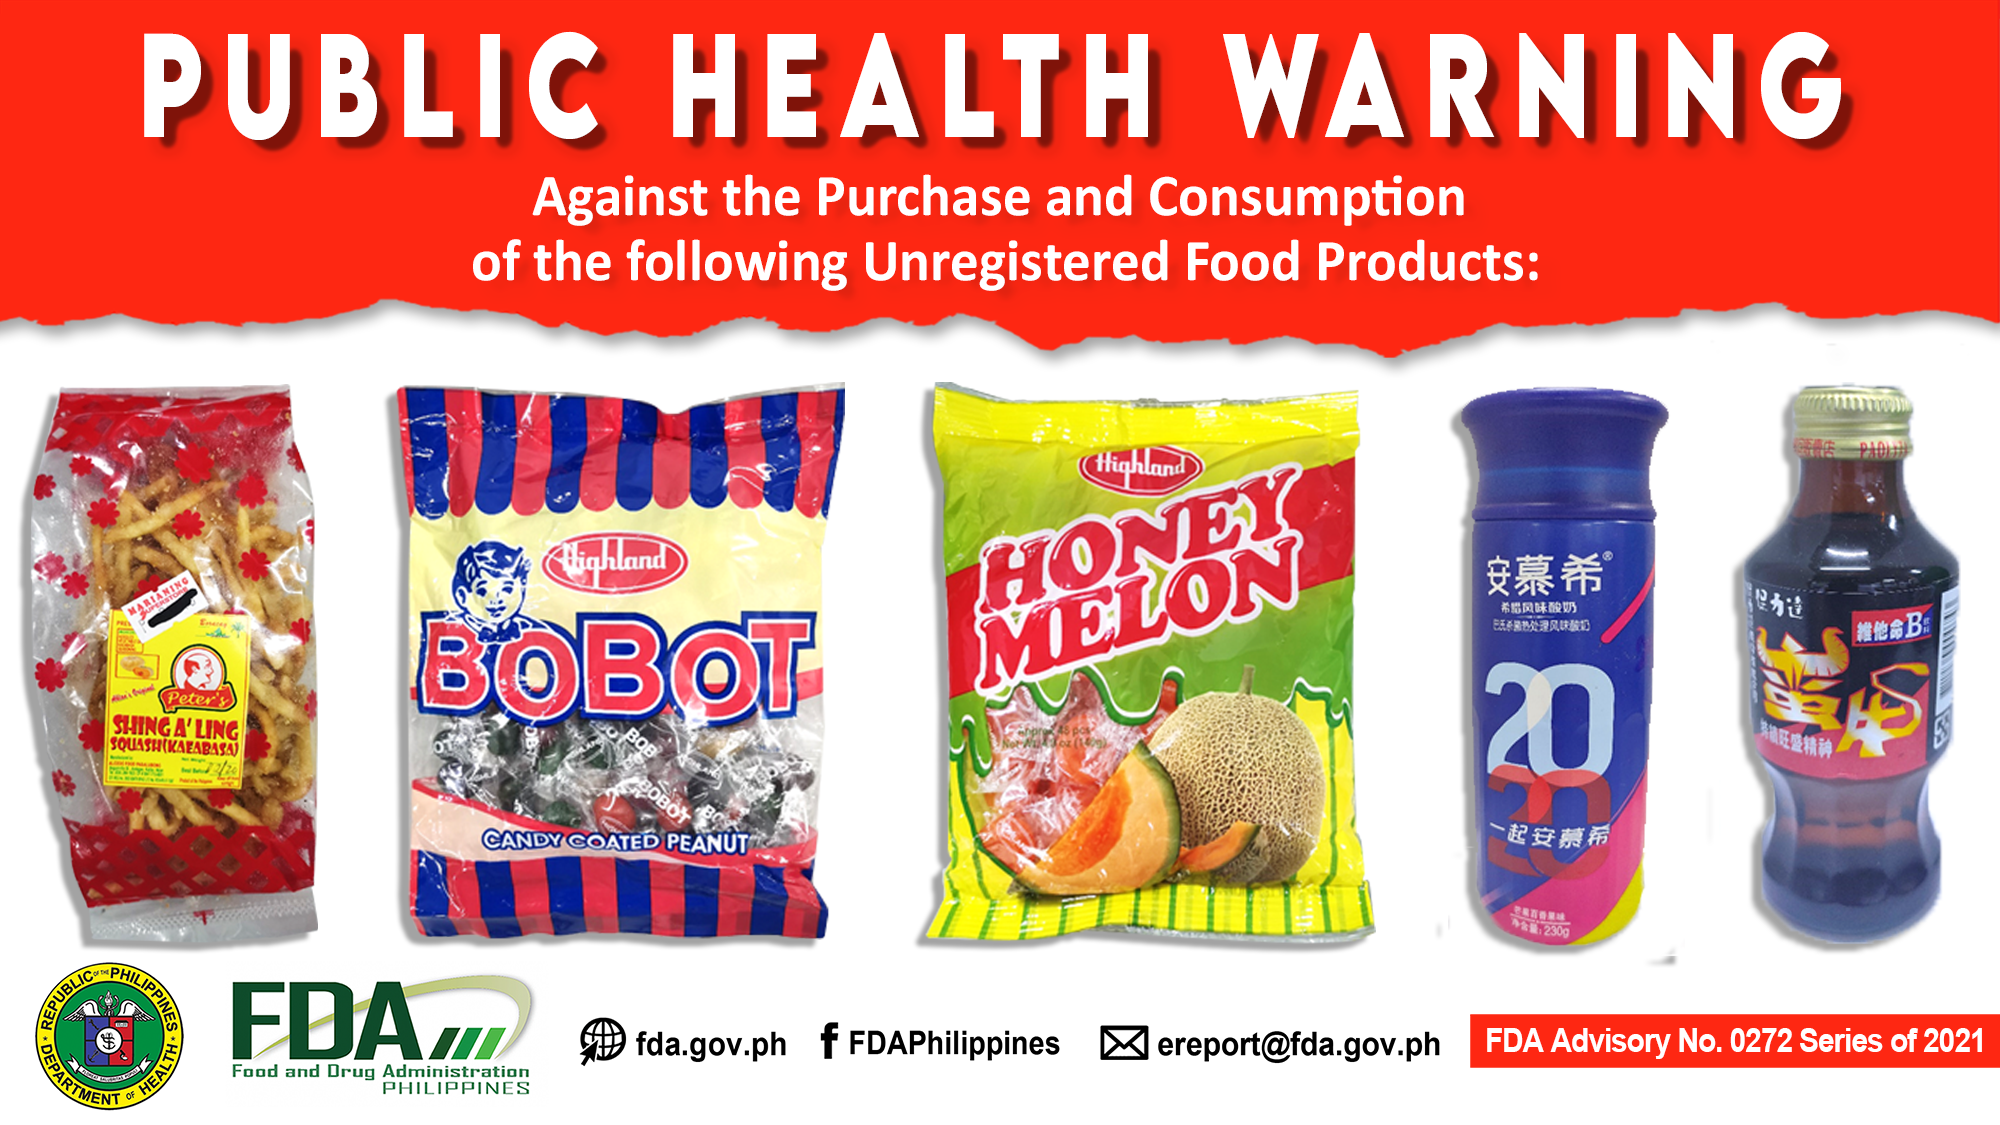 FDA Advisory No.2021-0272 || Public Health Warning Against the Purchase and Consumption of the following Unregistered Food Products: